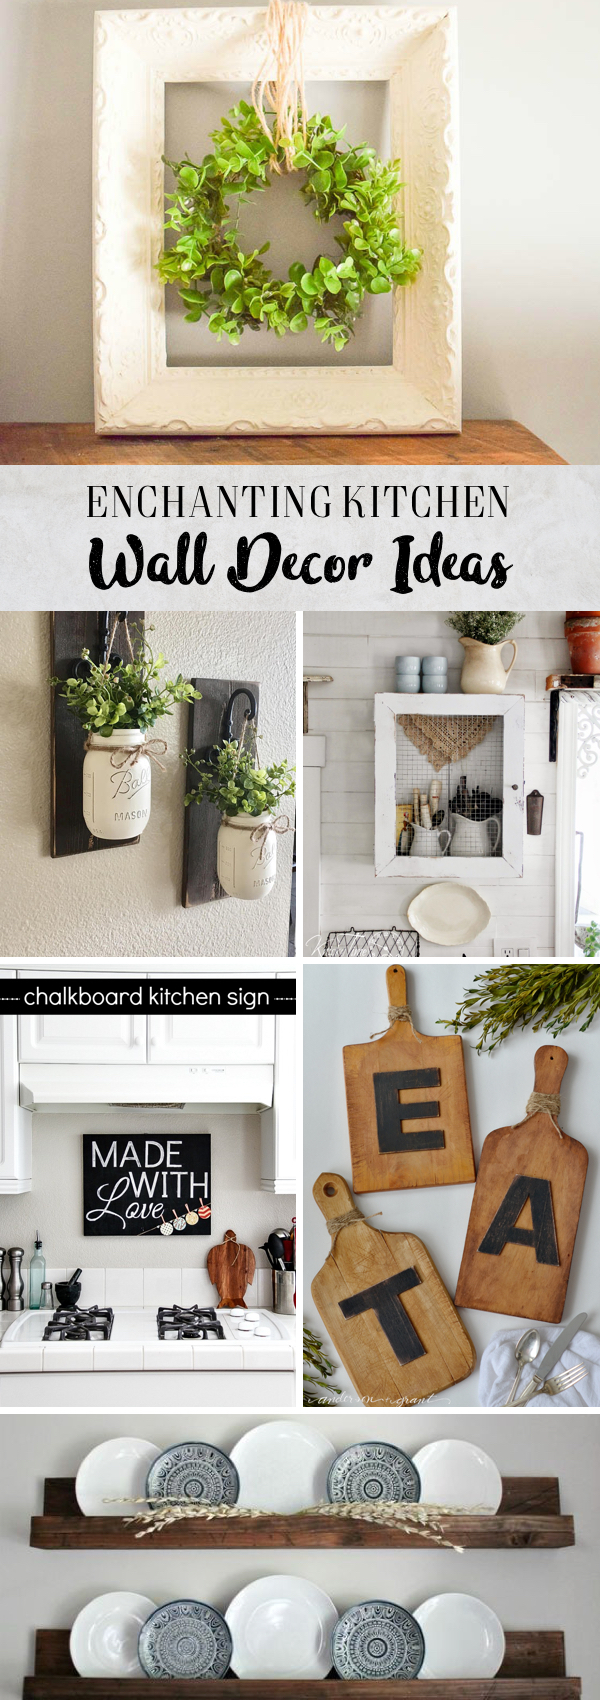 30 enchanting kitchen wall decor ideas that are oozing with style. Black Bedroom Furniture Sets. Home Design Ideas